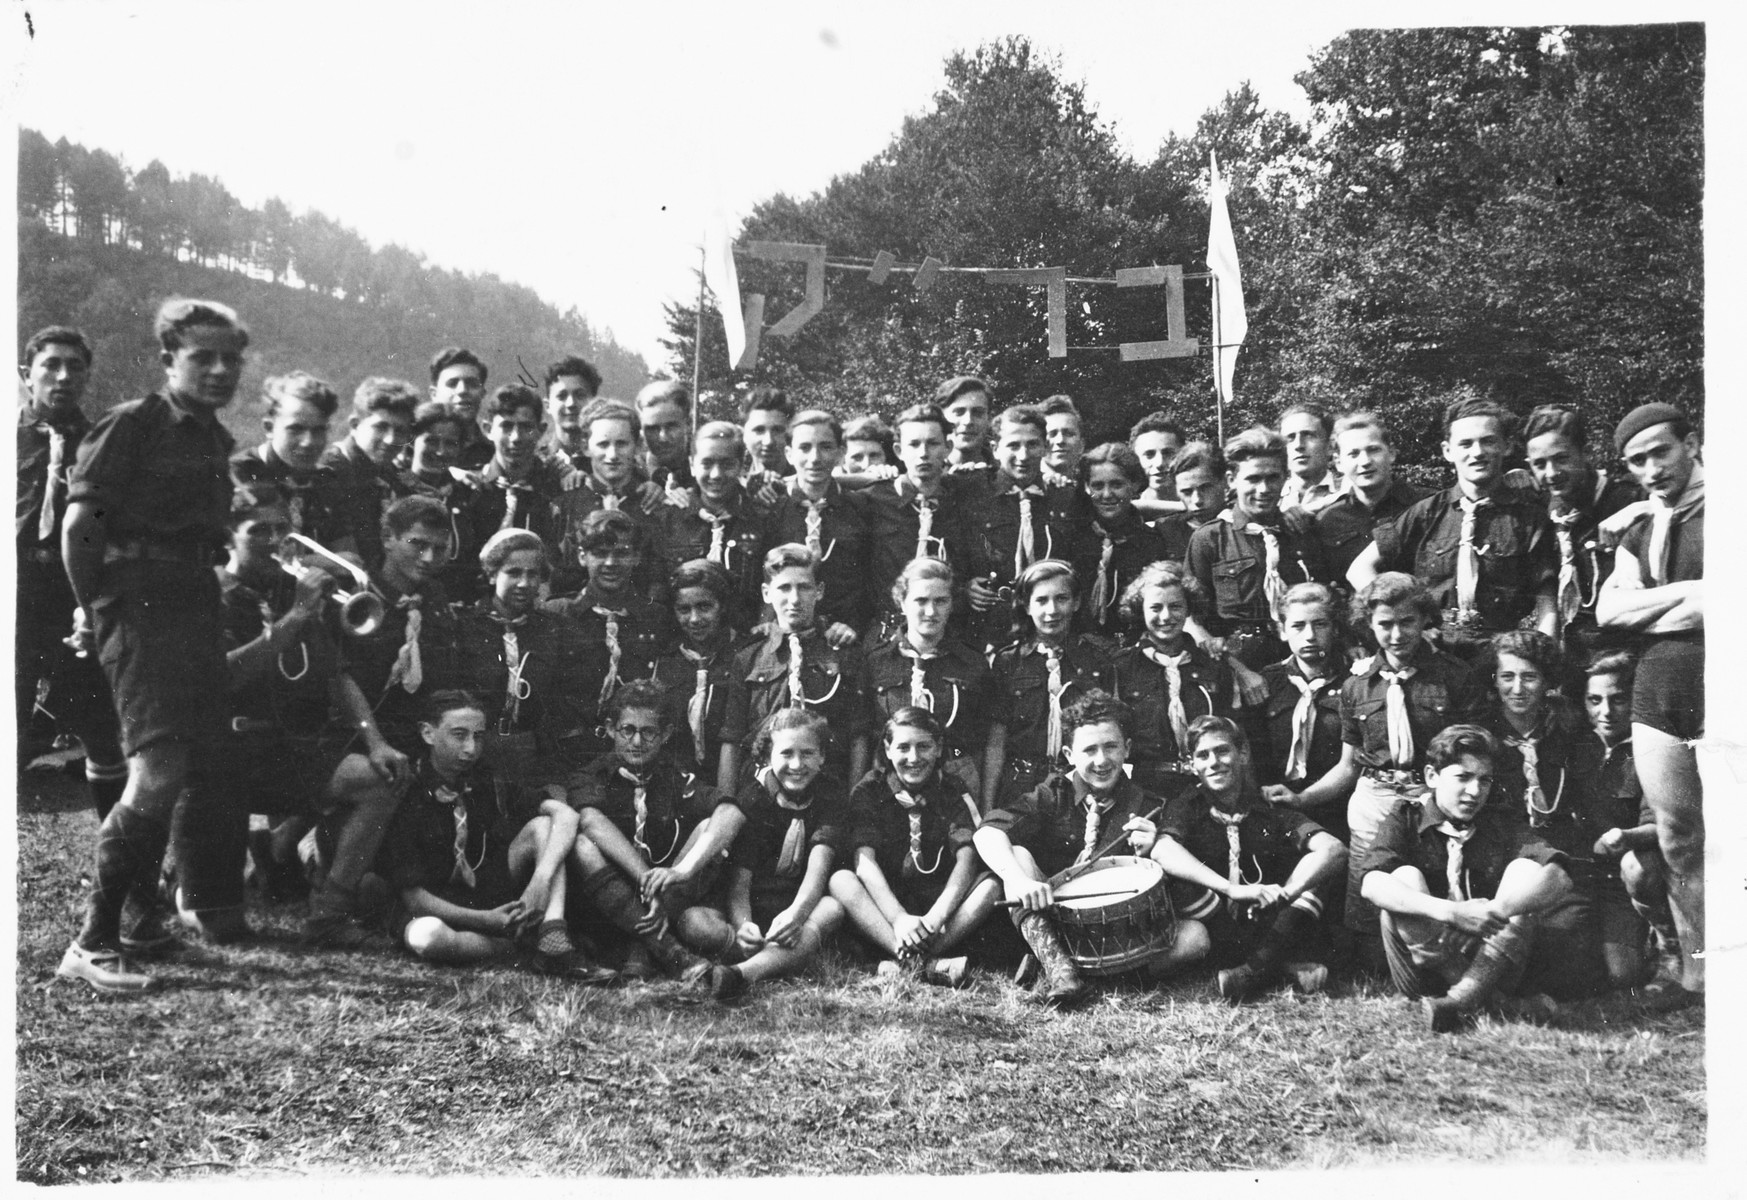 Group portrait of members of the Brit Kanaim (covenant of zealots), a revisionist Zionist youth movement that split off from Betar, in Antwerp, Belgium.  Among those pictured is Meir Grossman.